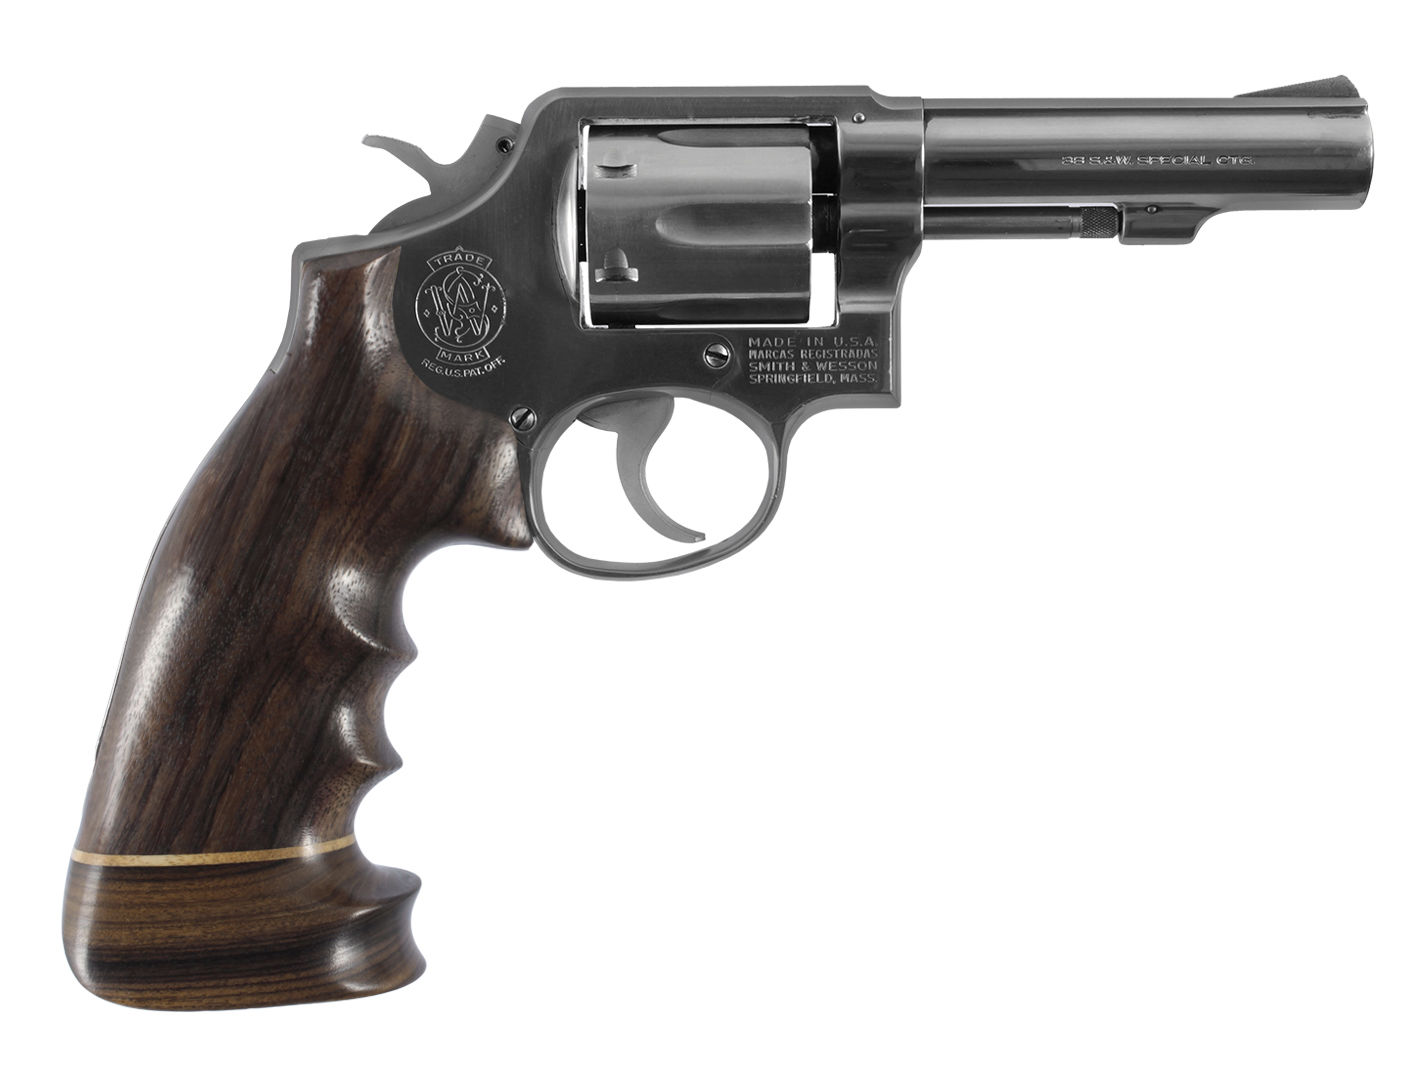 ROSEWOOD BIG BUTT REVOLVER GRIP - S&W K OR L FRAME SQUARE BUTT